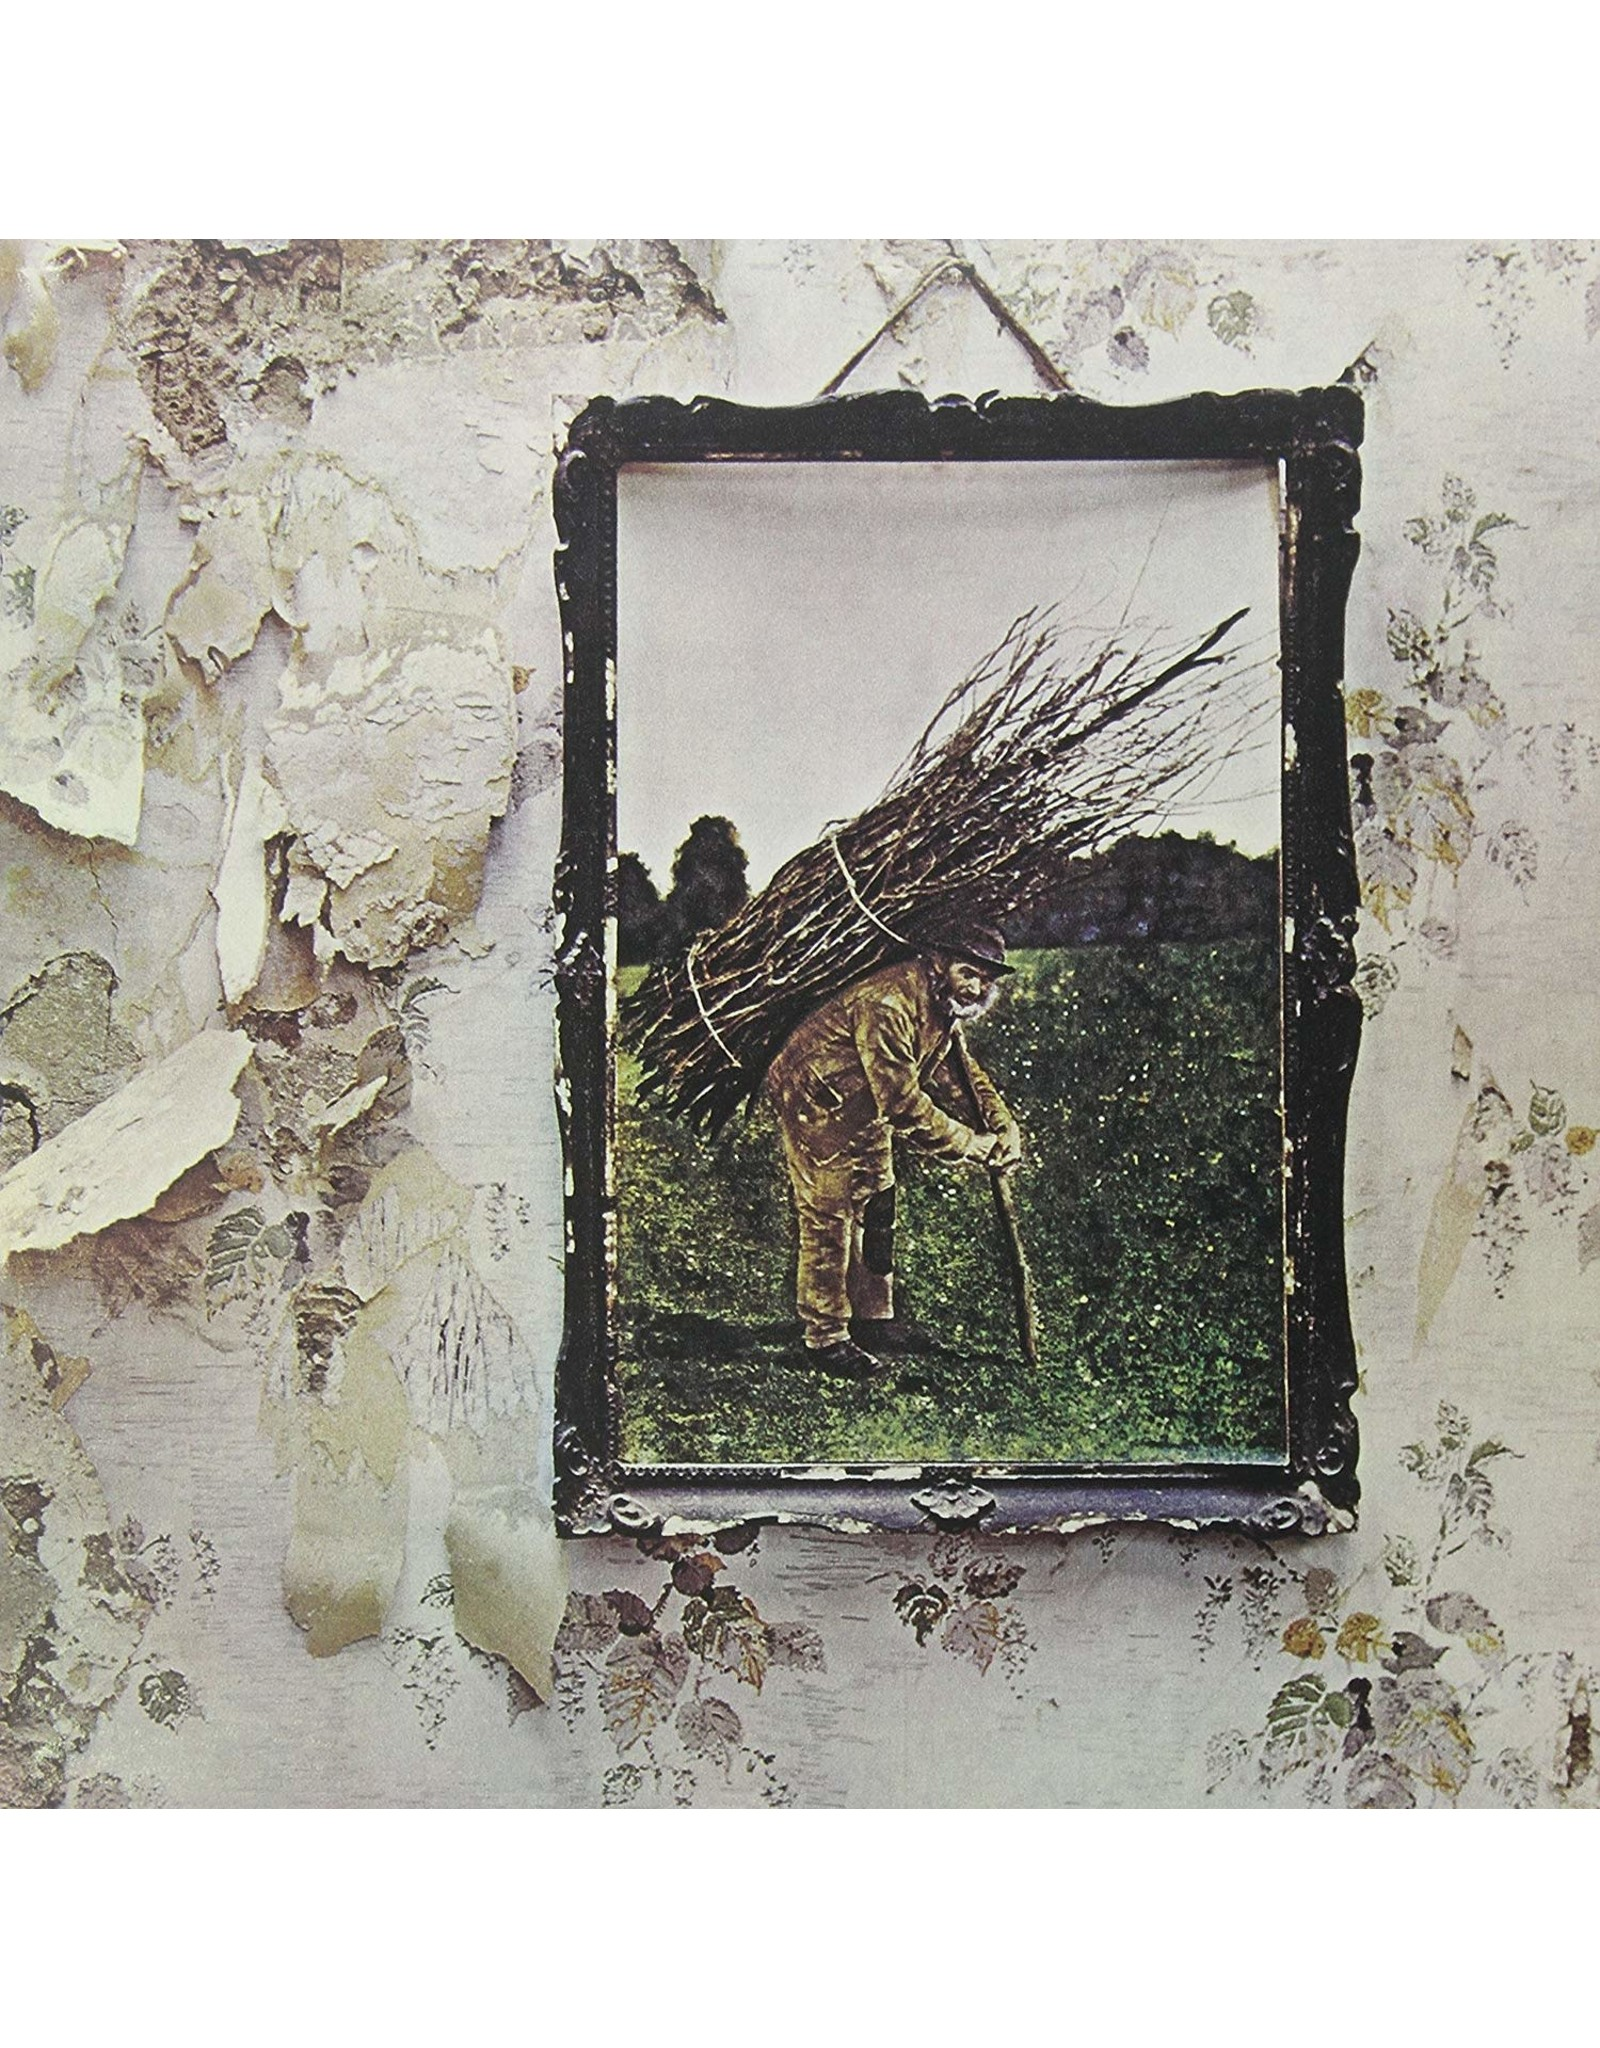 Led Zeppelin - IV (Deluxe Edition)